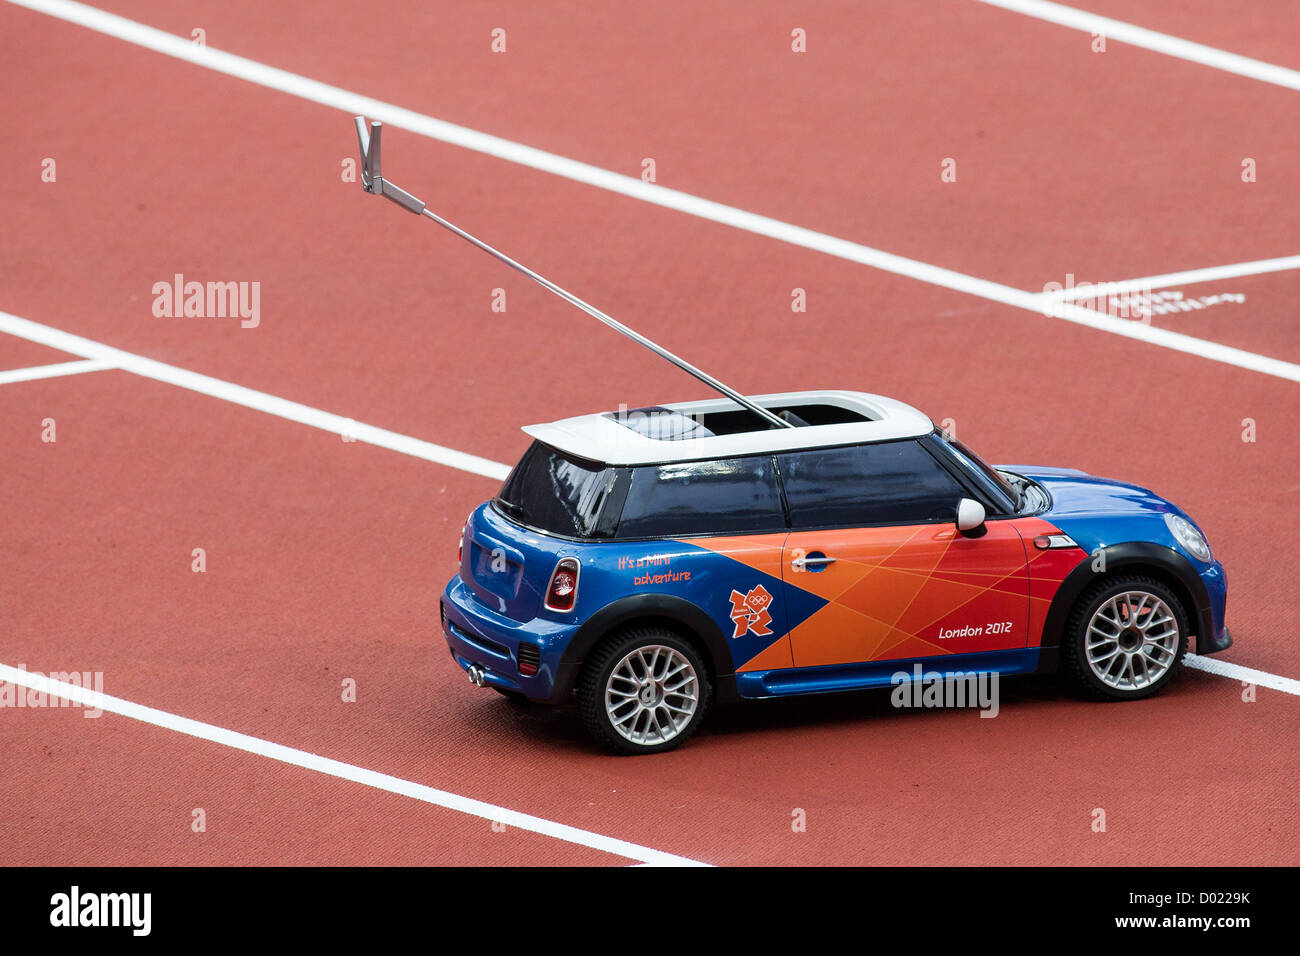 BMW Mini Javelin retrieval radio controlled car at the Olympic Summer Games, London 2012 - Stock Image